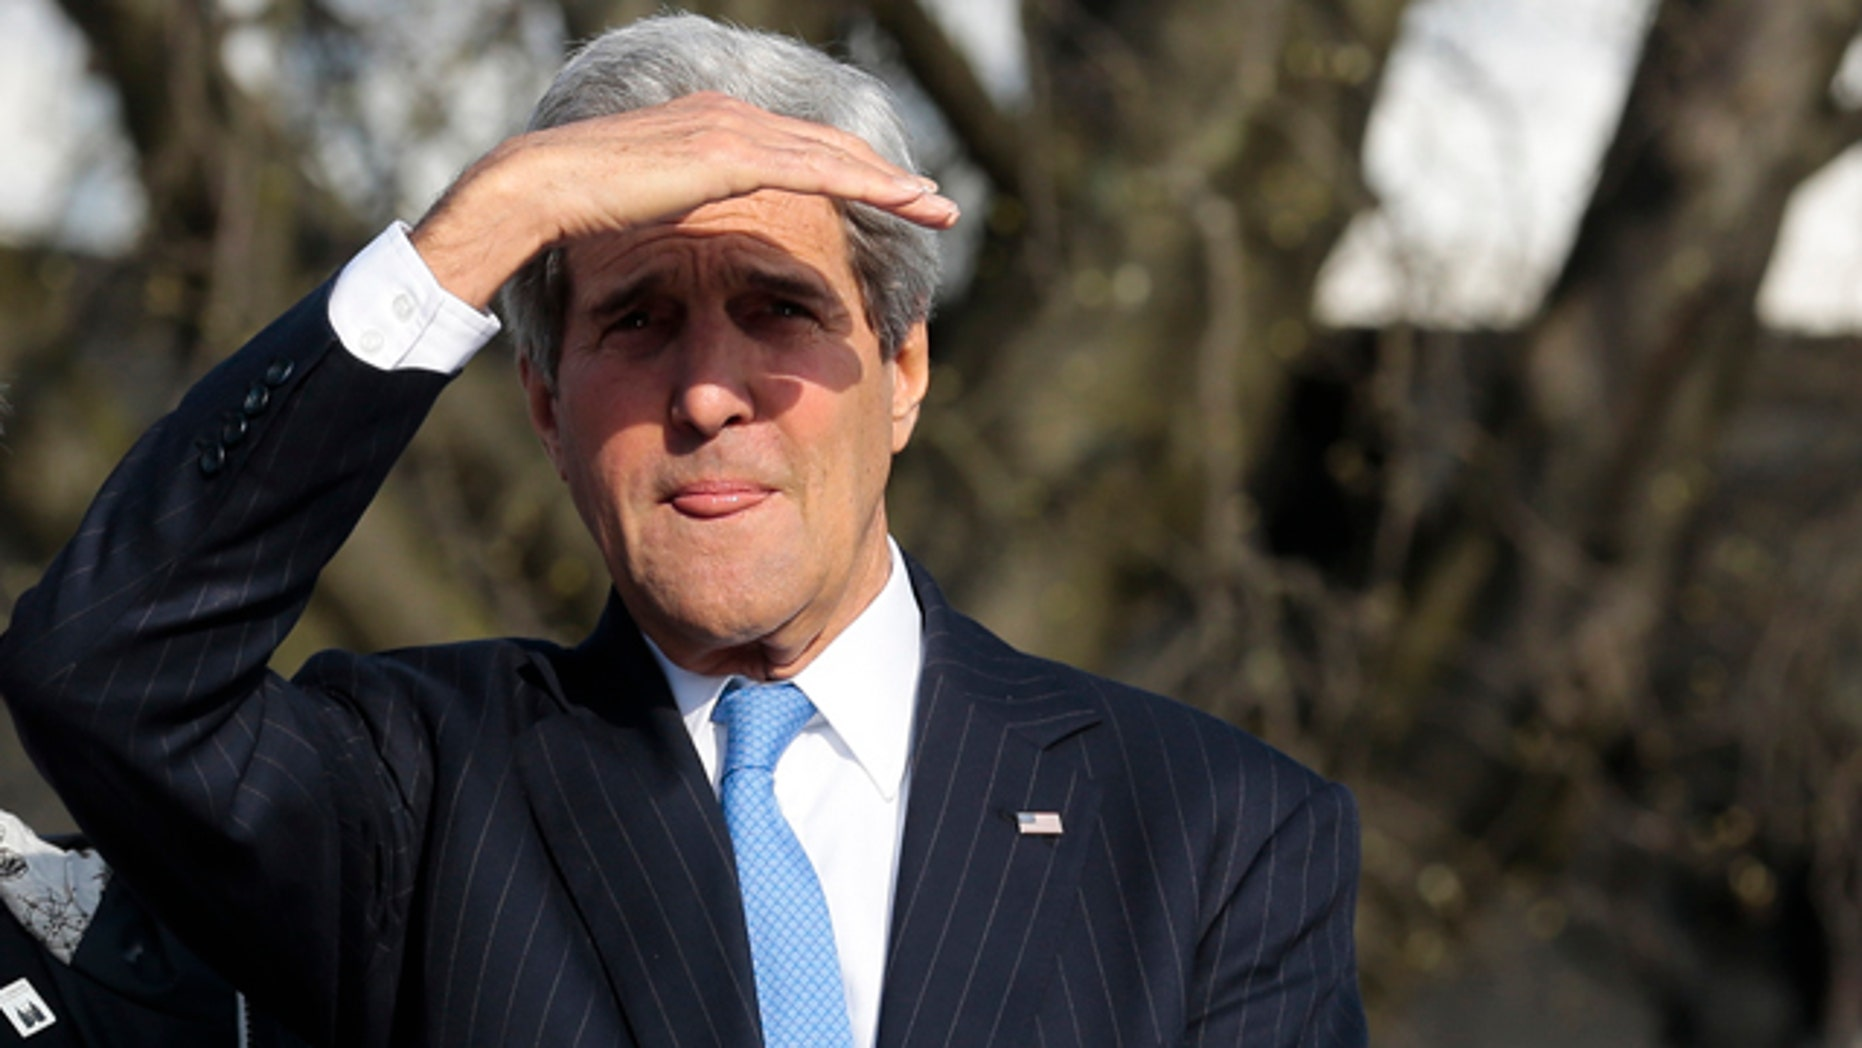 April 15, 2015: United States Secretary of State John Kerry shields his eyes against the sun as he uses a boat on his way to a working session during a meeting of the G7 Foreign Ministers in Luebeck, Germany. The meeting is being held ahead of the G7 leaders summit in Germany from June 7 to 8, 2015. (AP Photo/Markus Schreiber)